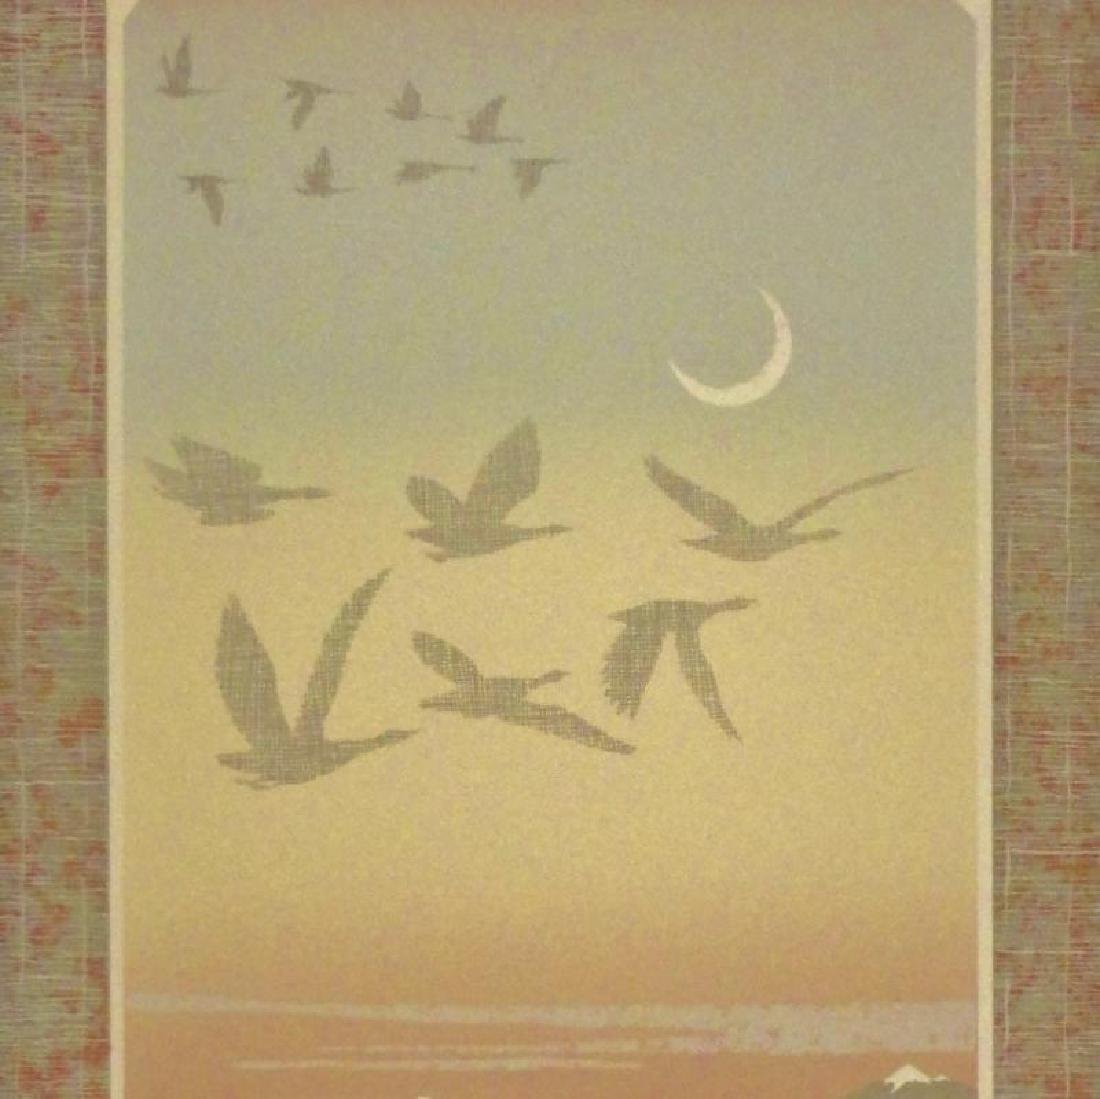 Abstract Mountain Bird Flight Signed Serigraph - 4